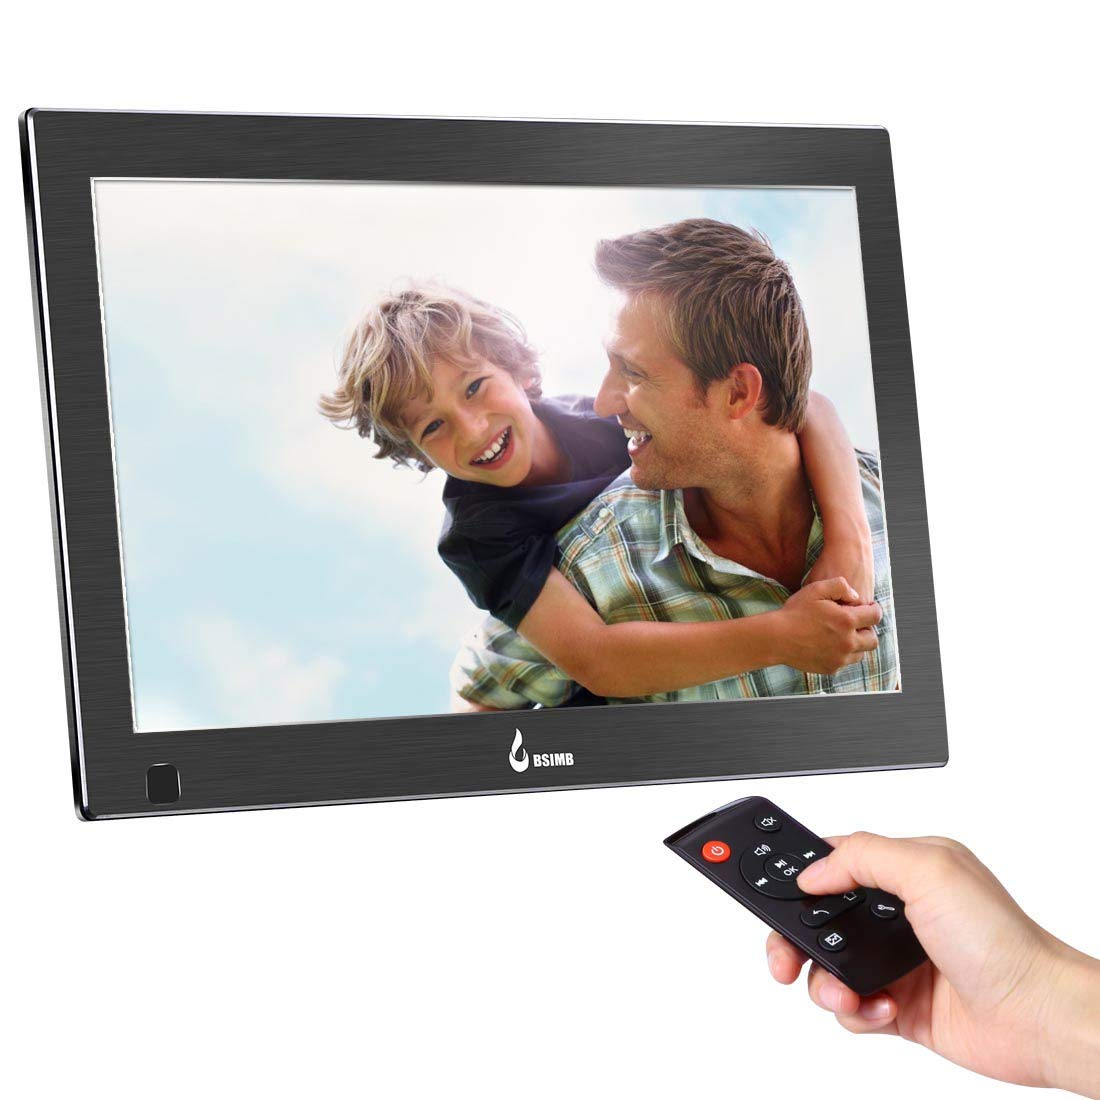 BSIMB 13.3 Inch Digital Picture Frame Digital Photo Frame 1920x1080(16:9) IPS Display Widescreen with Motion Sensor and Remote Control Support USB/SD Card Infrared M14 by Bsimb (Image #1)